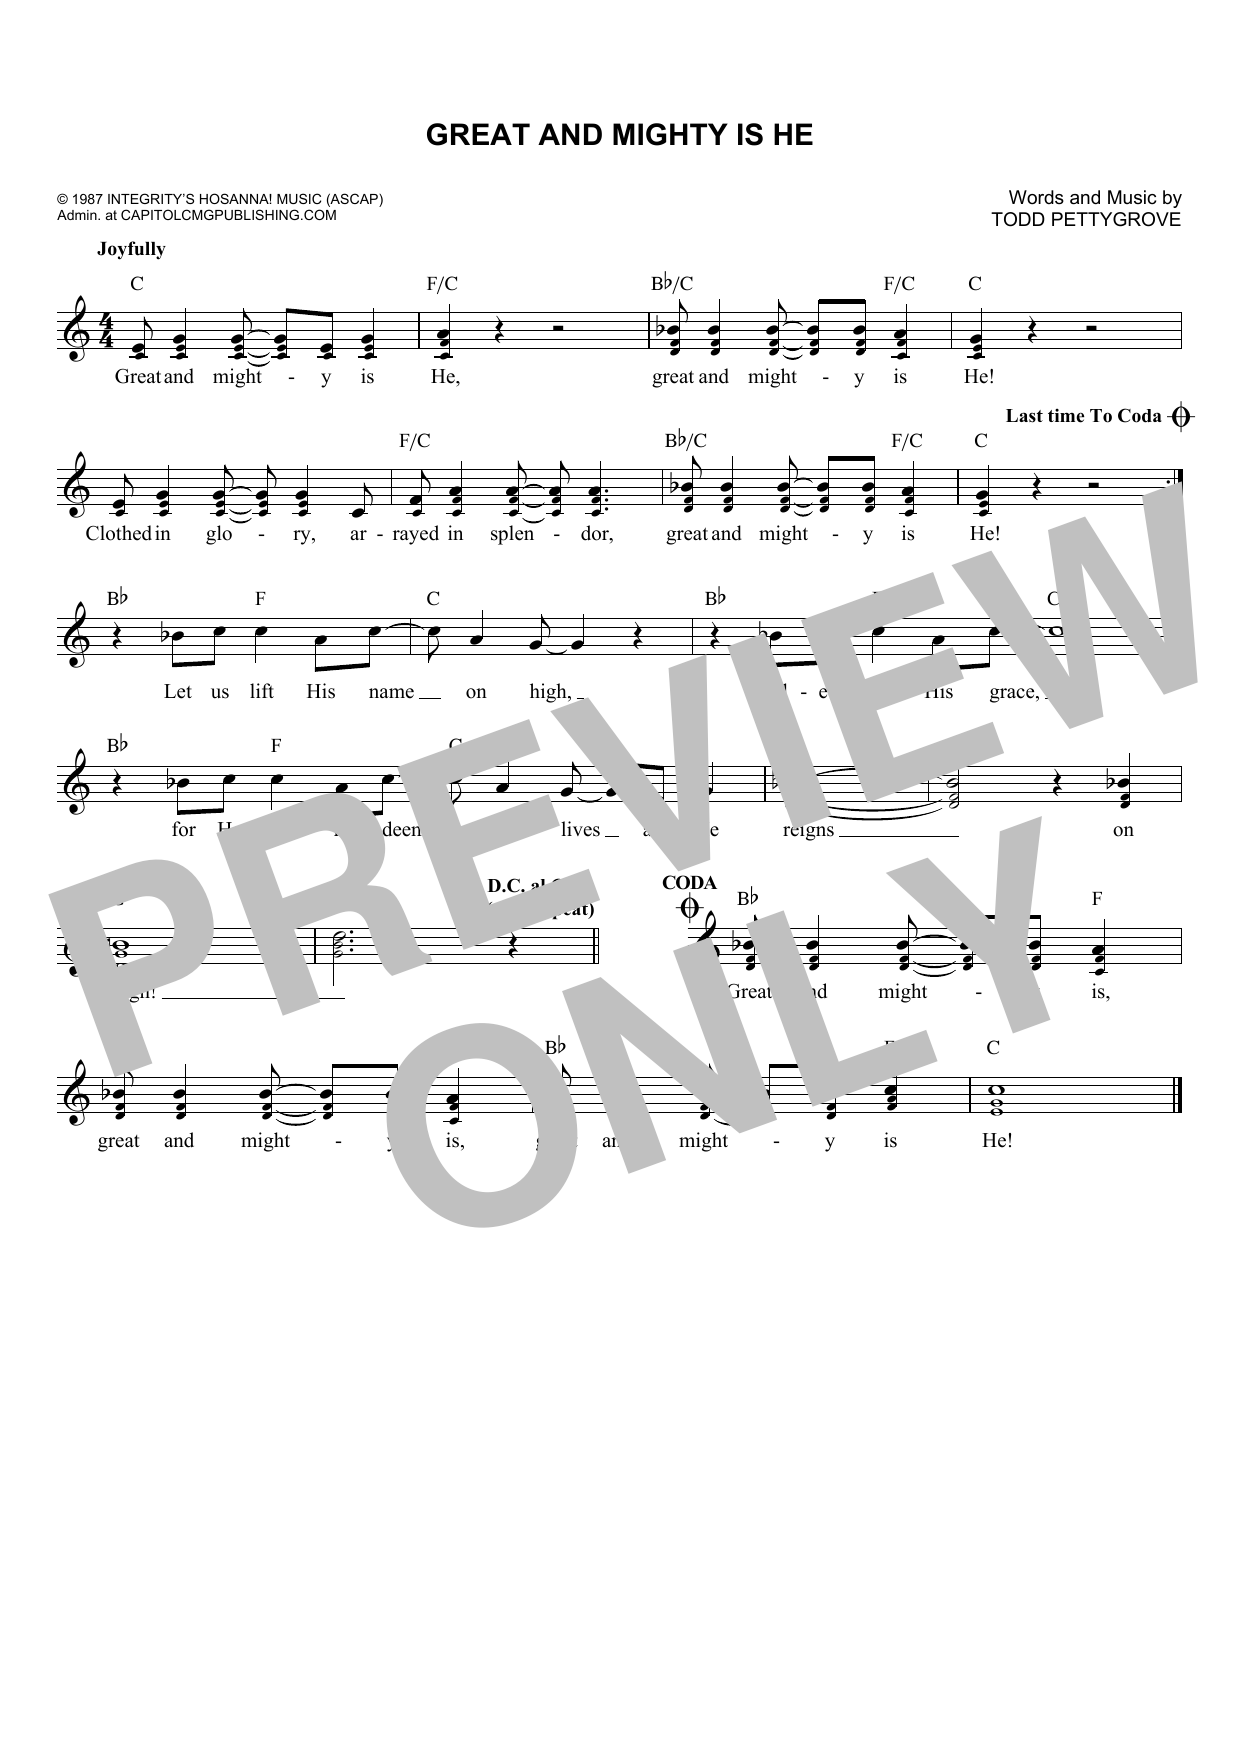 Todd Pettygrove Great And Mighty Is He sheet music notes and chords. Download Printable PDF.